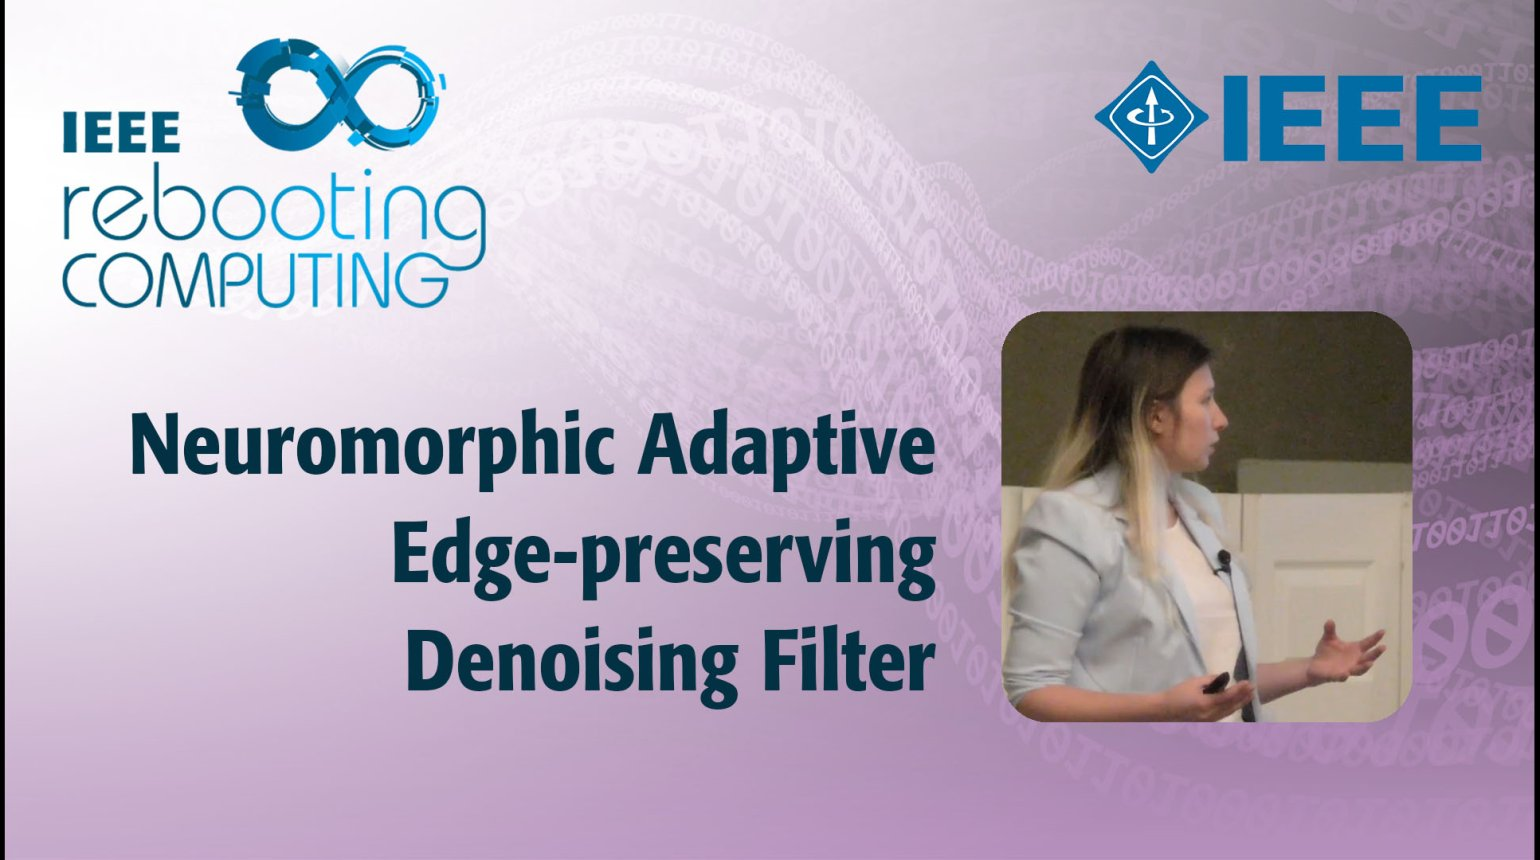 Neuromorphic Adaptive Edge-preserving Denoising Filter: IEEE Rebooting Computing 2017